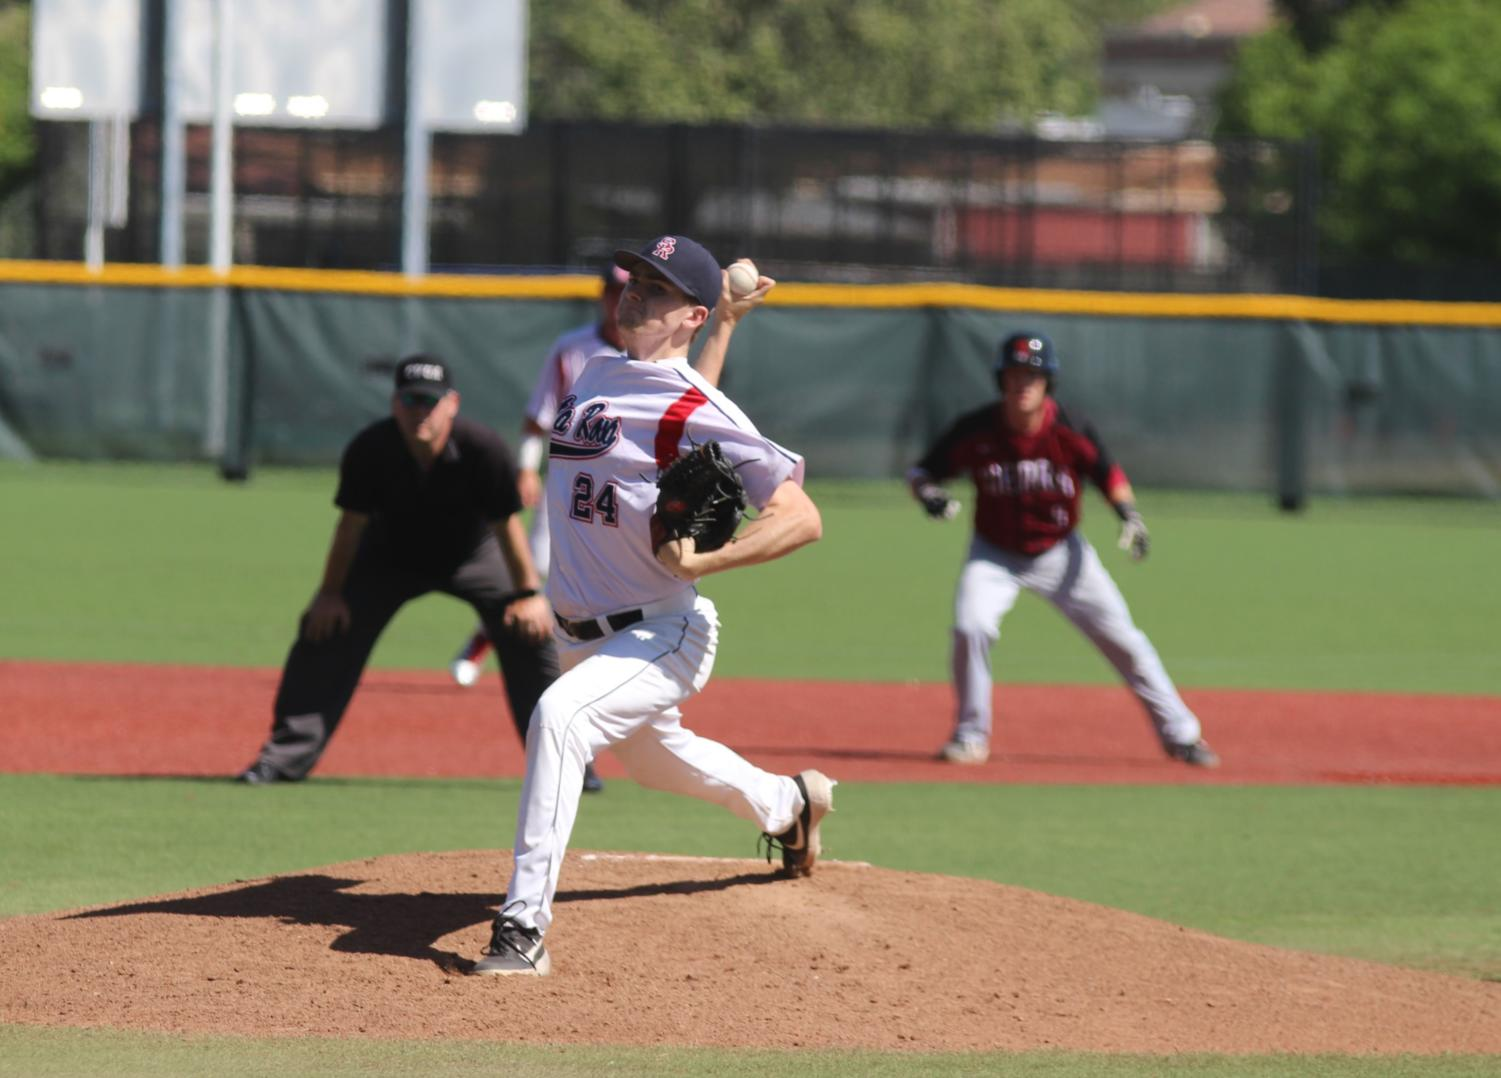 Santa Rosa Junior College starting pitcher Shane O'Malley had a 3.36 ERA and a 5-3 record entering Thursday's game.